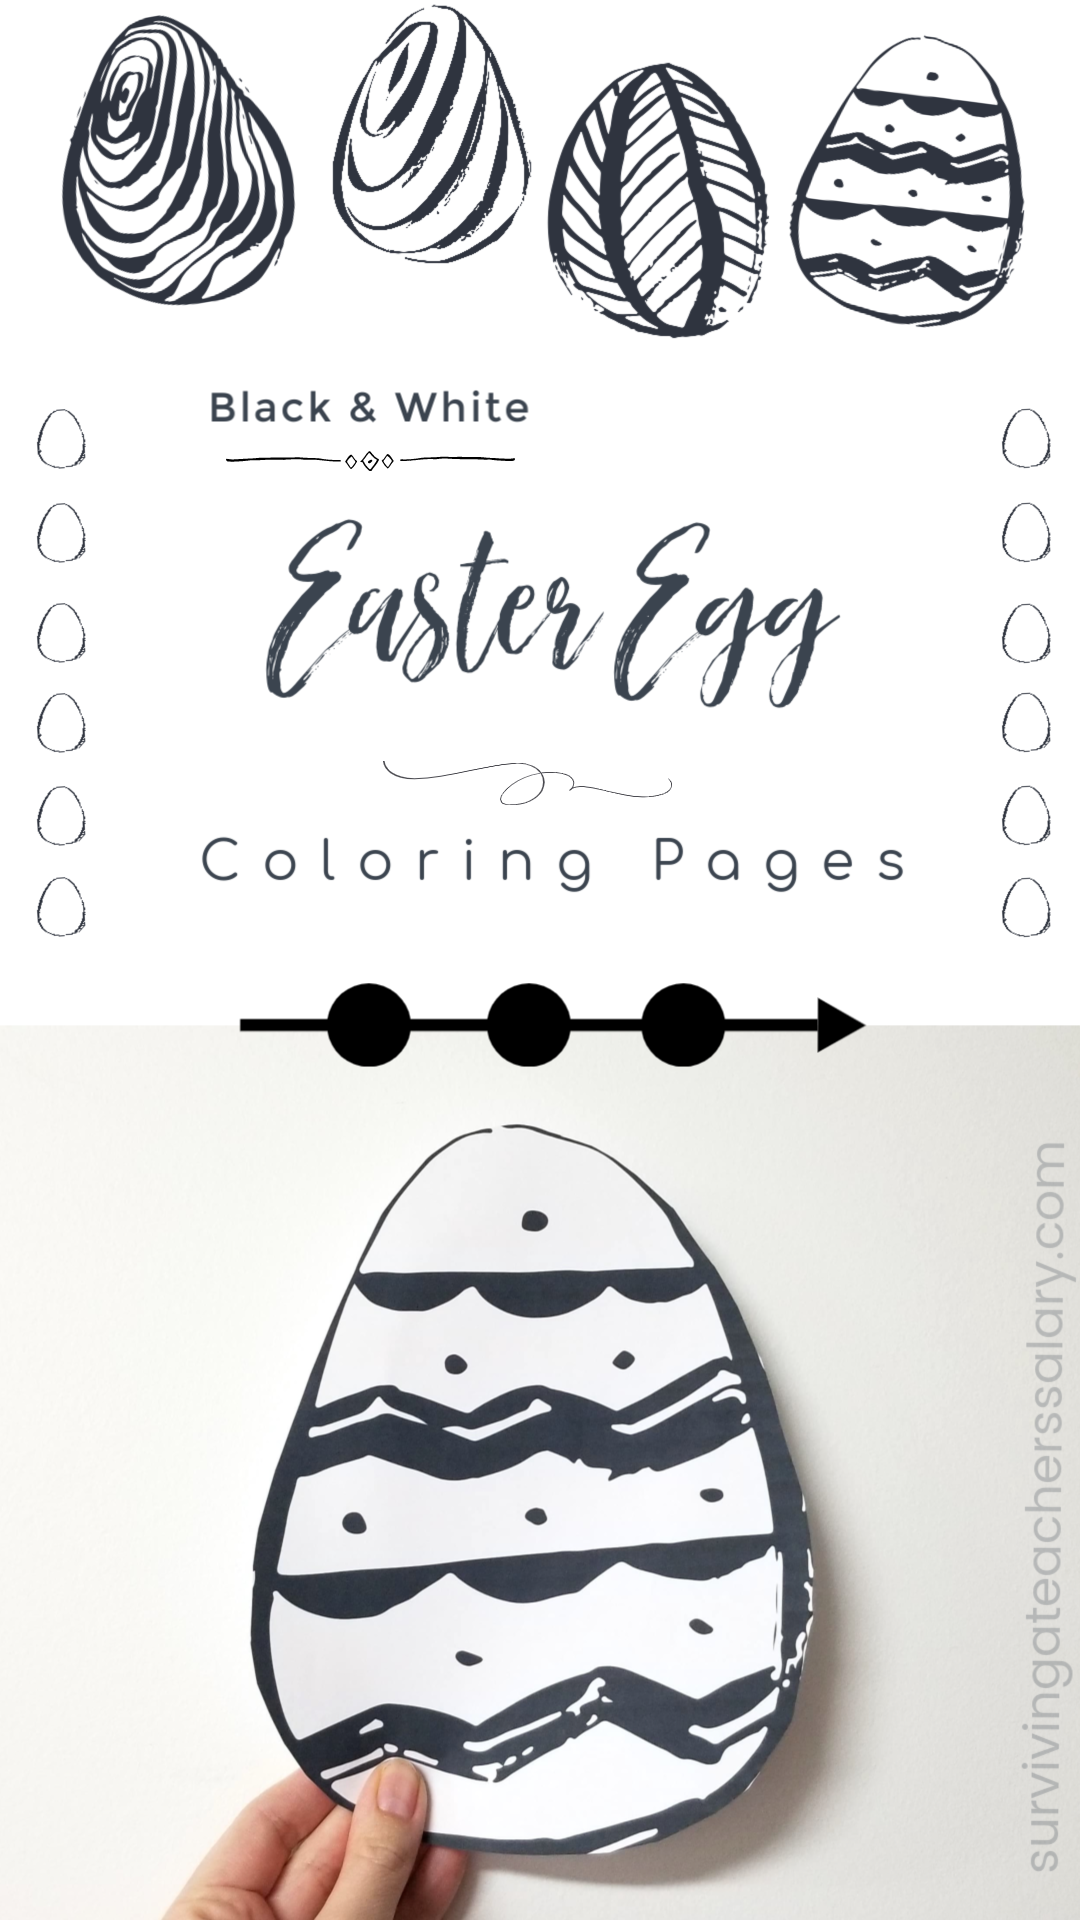 Printable Easter Egg Coloring Pages Window Designs Easter Egg Coloring Pages Coloring Easter Eggs Coloring Eggs